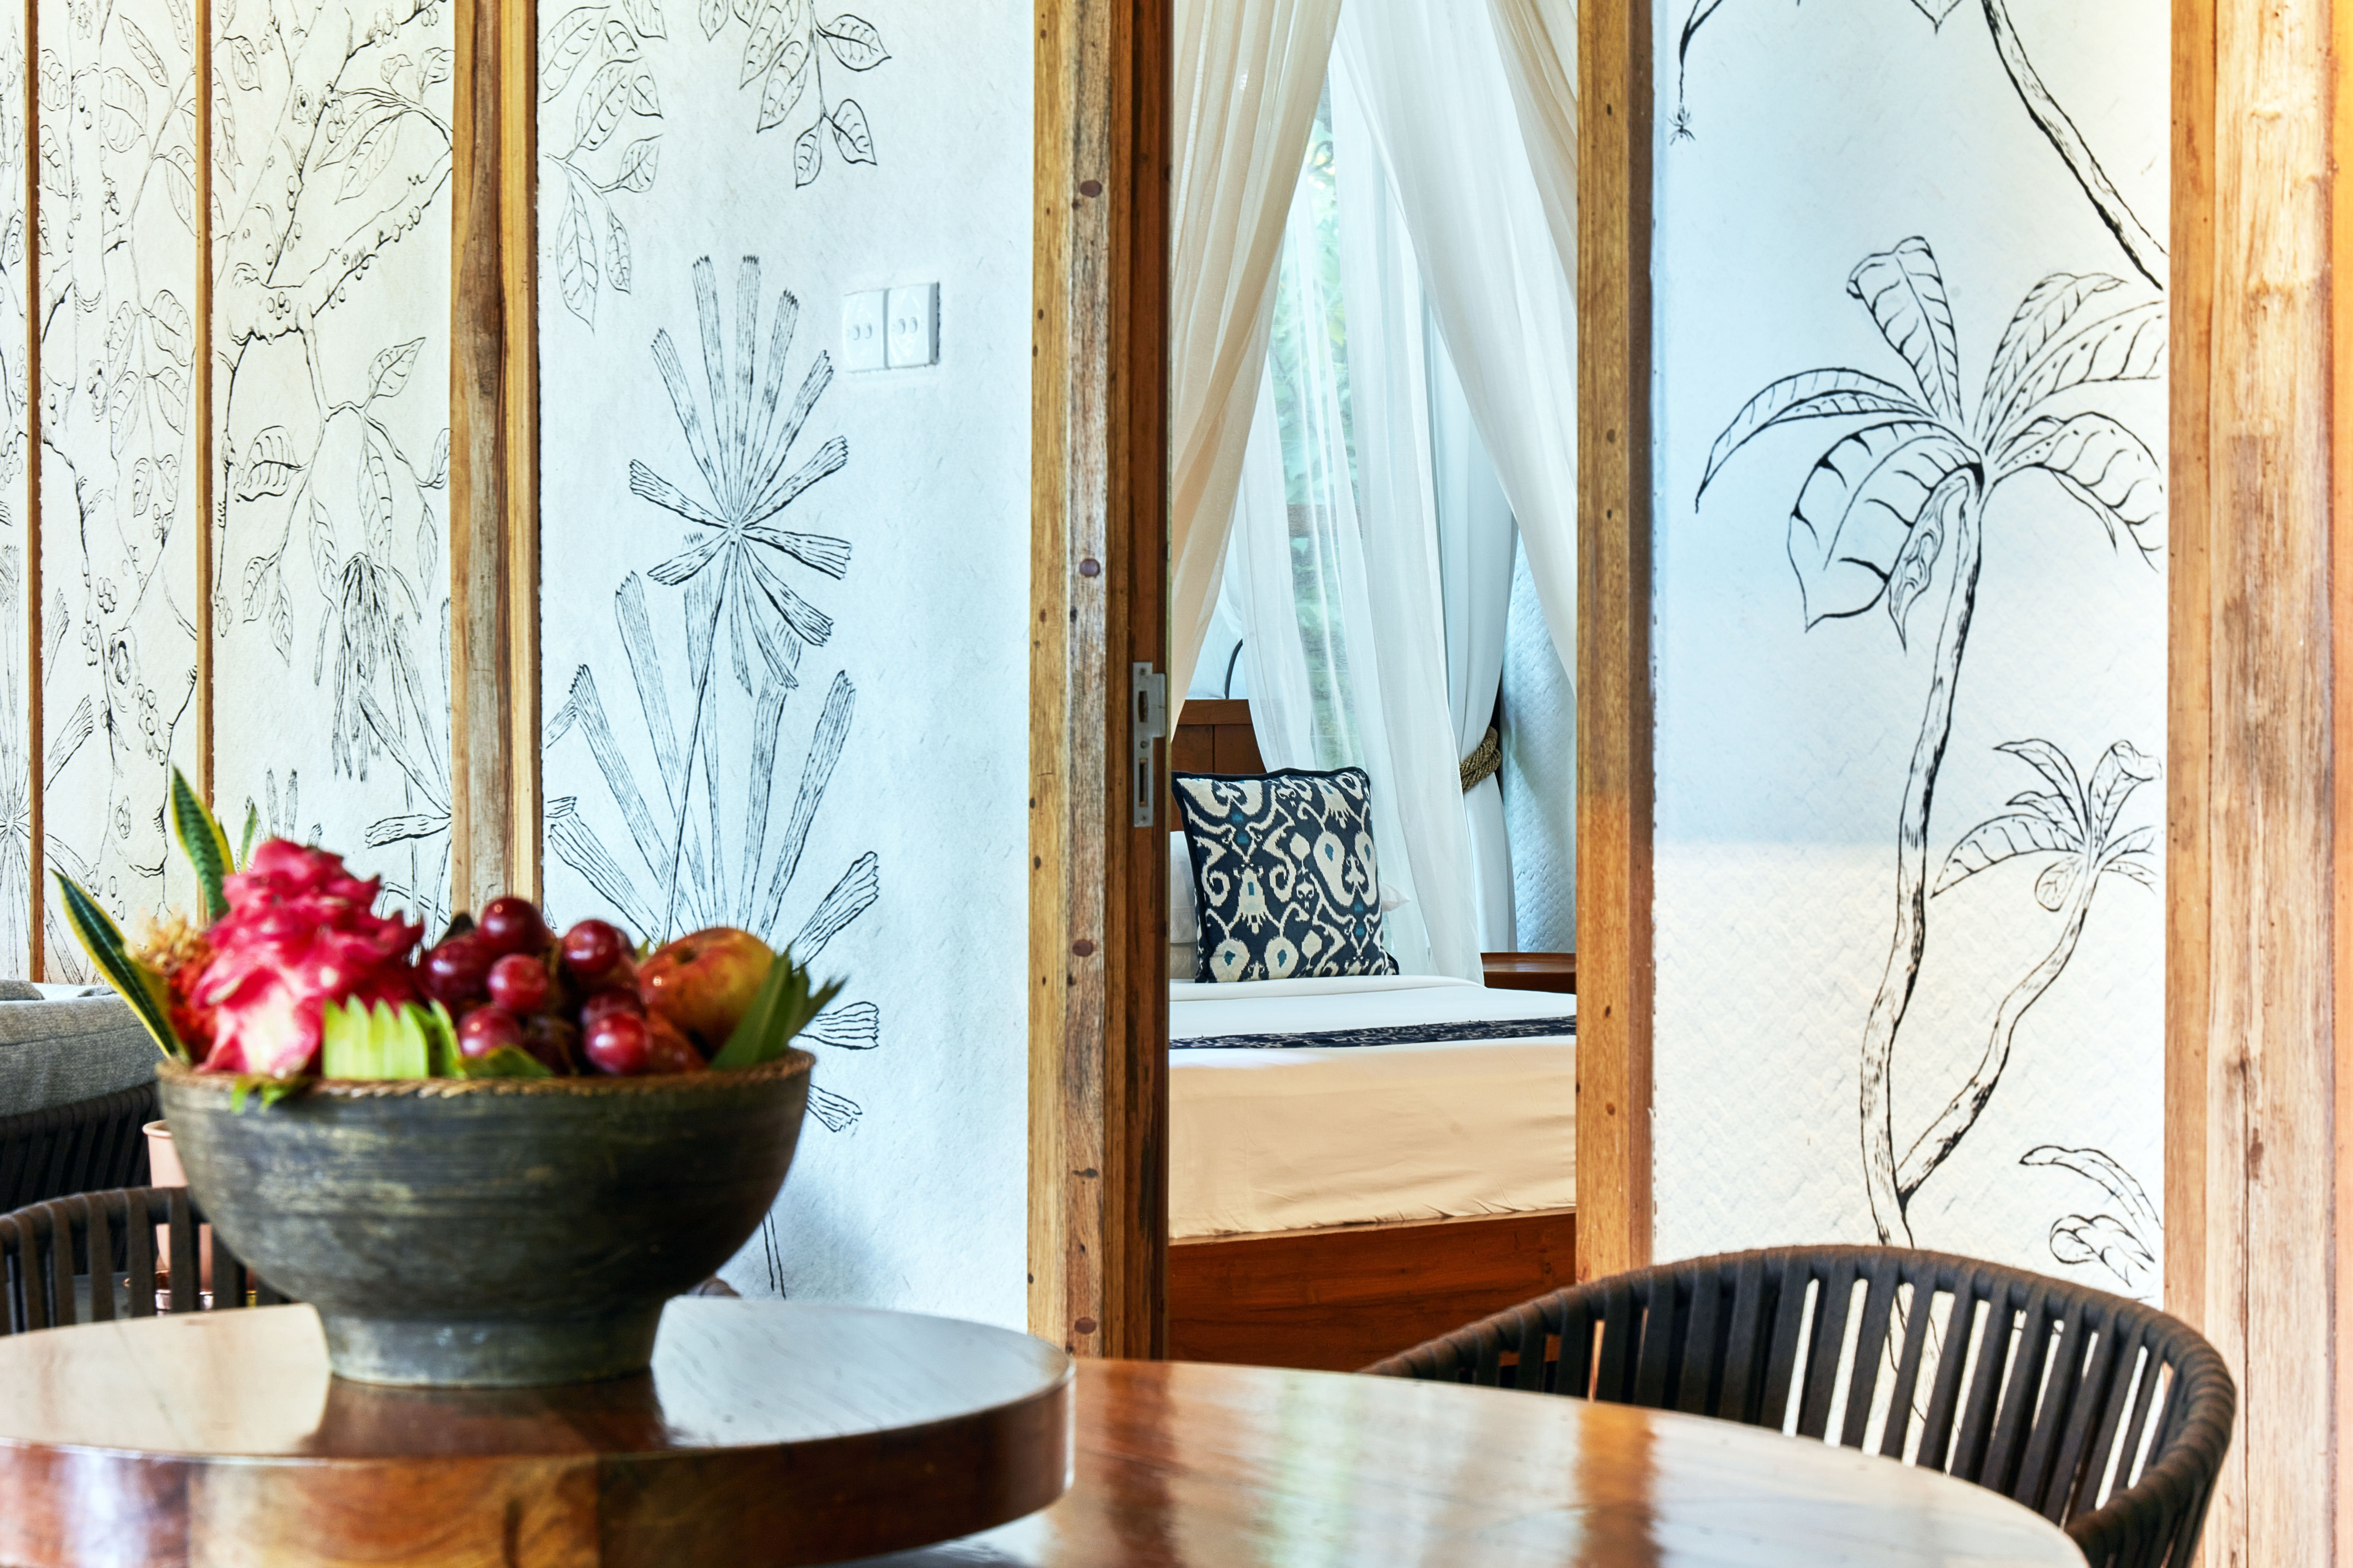 cropped_table_fruit_bowl_mural_wall_jungle_lodge (1)